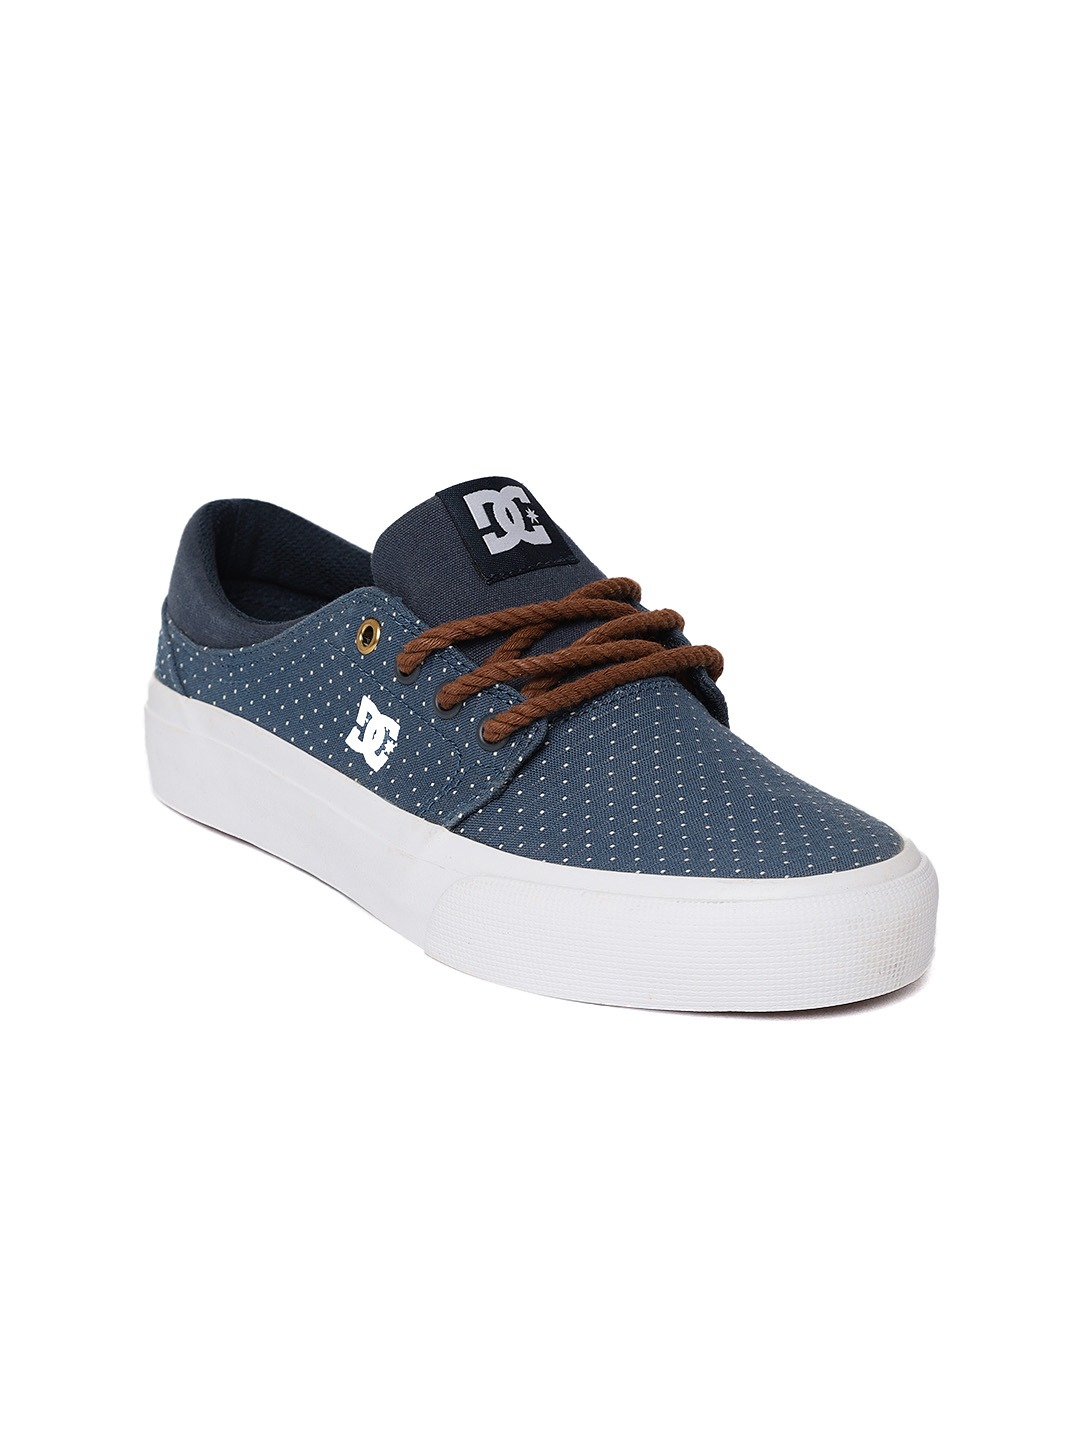 Navy Blue & Off-White Woven Design Sneakers